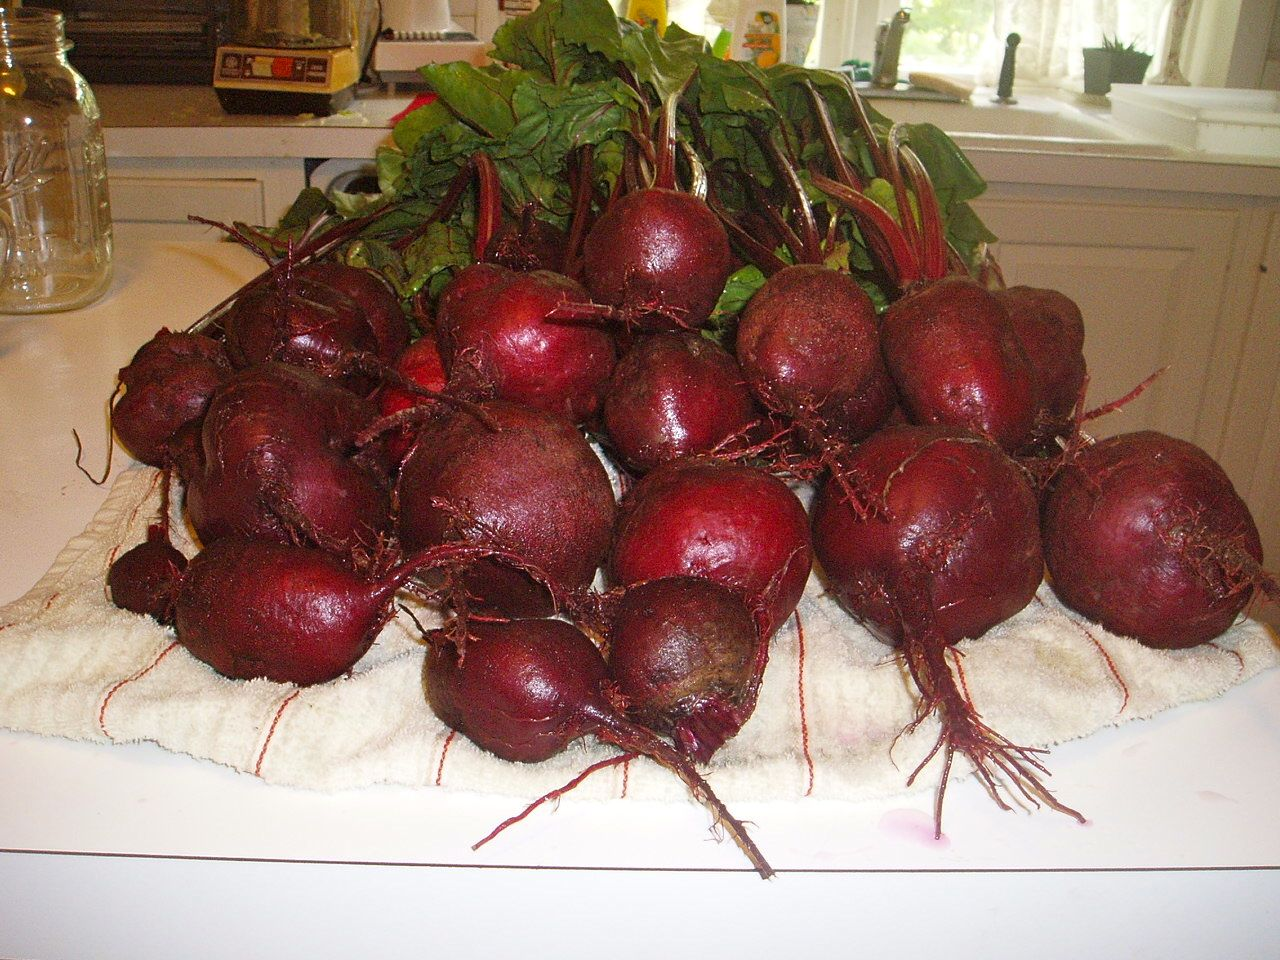 Beautiful, but these beets (and many more) were all ready to be picked at the same time.  These were shared with my family, but would have found happy homes at my local farmers market.